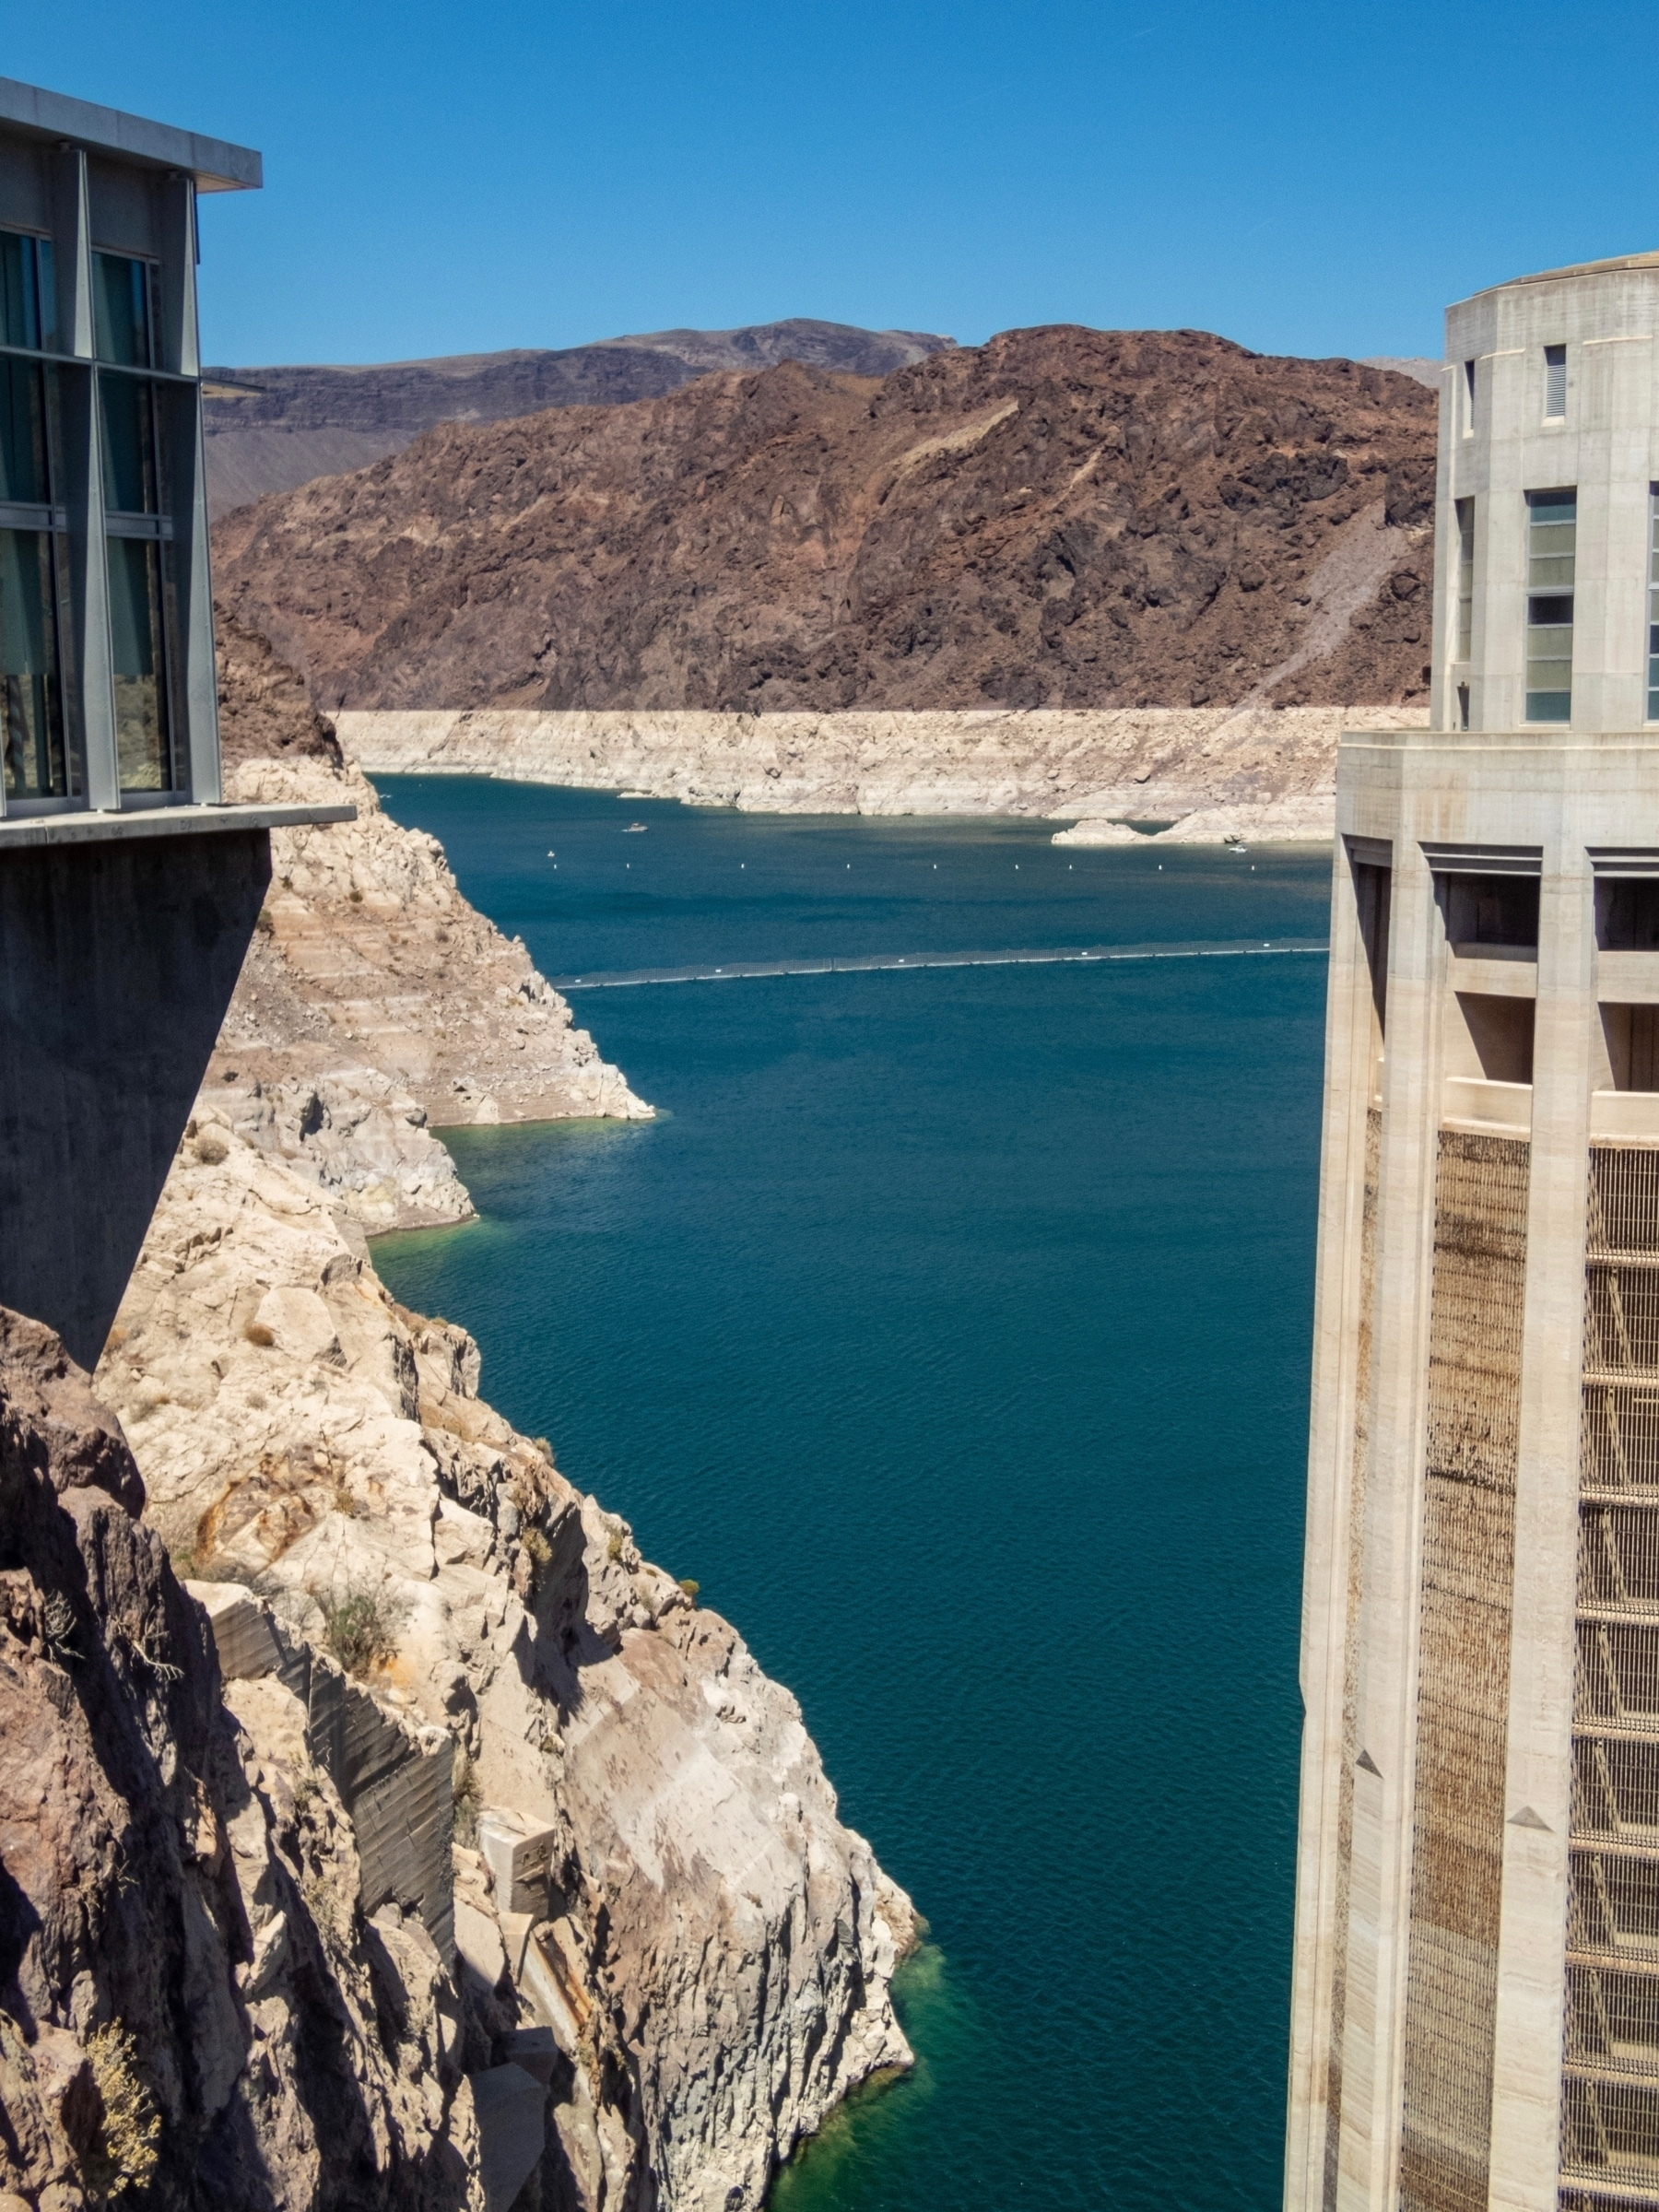 Lake Meade upstream of hoover dam with white bathtub ring